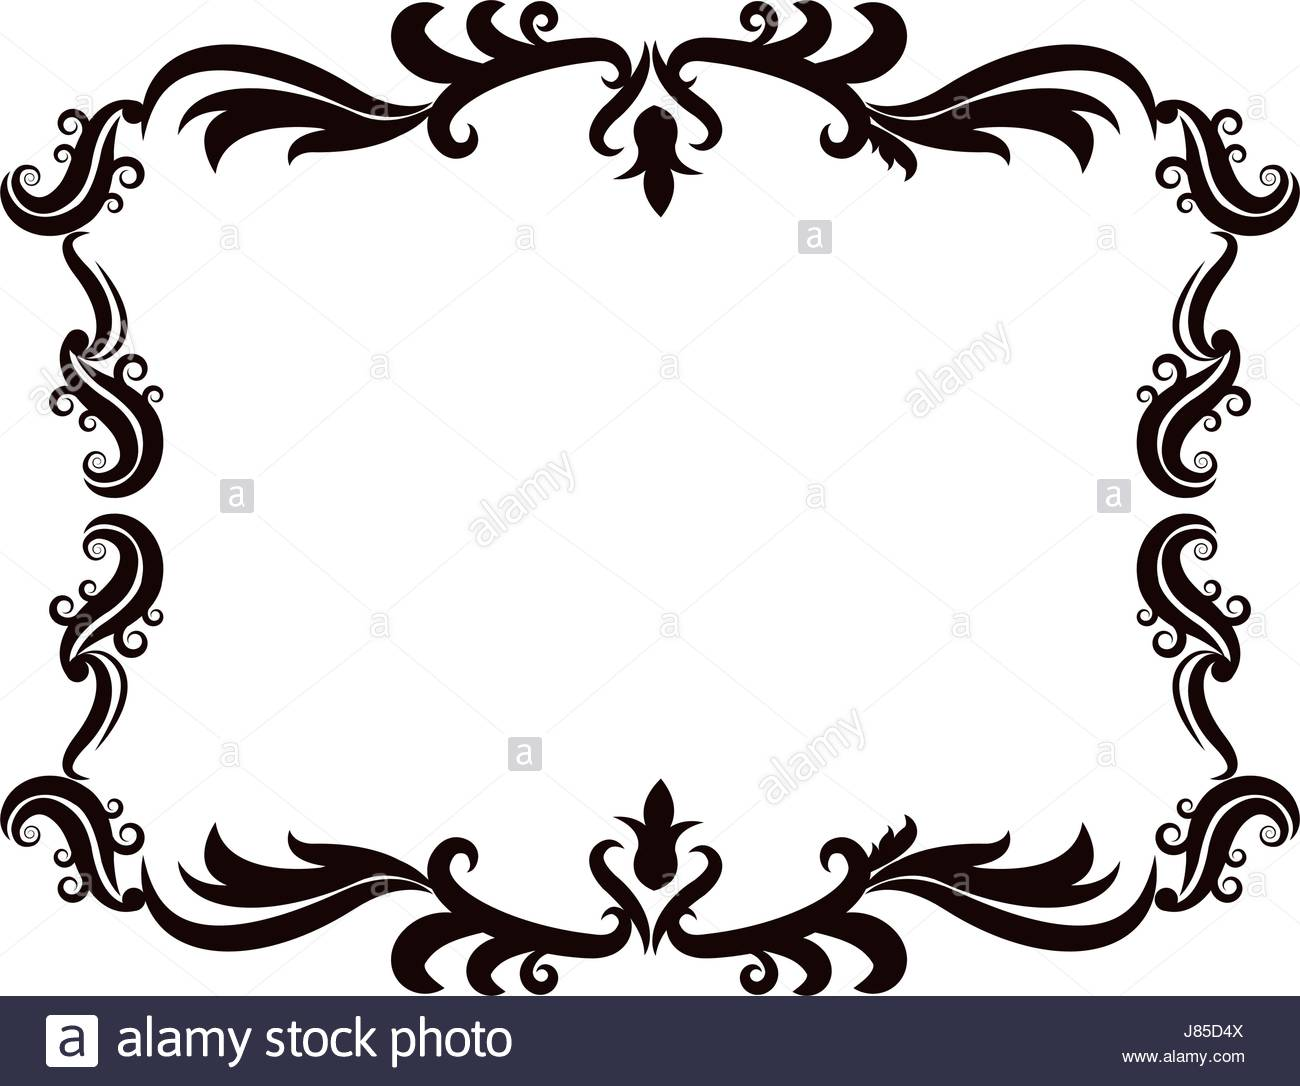 Decorative scroll clipart free download best decorative for Decorative scrollwork